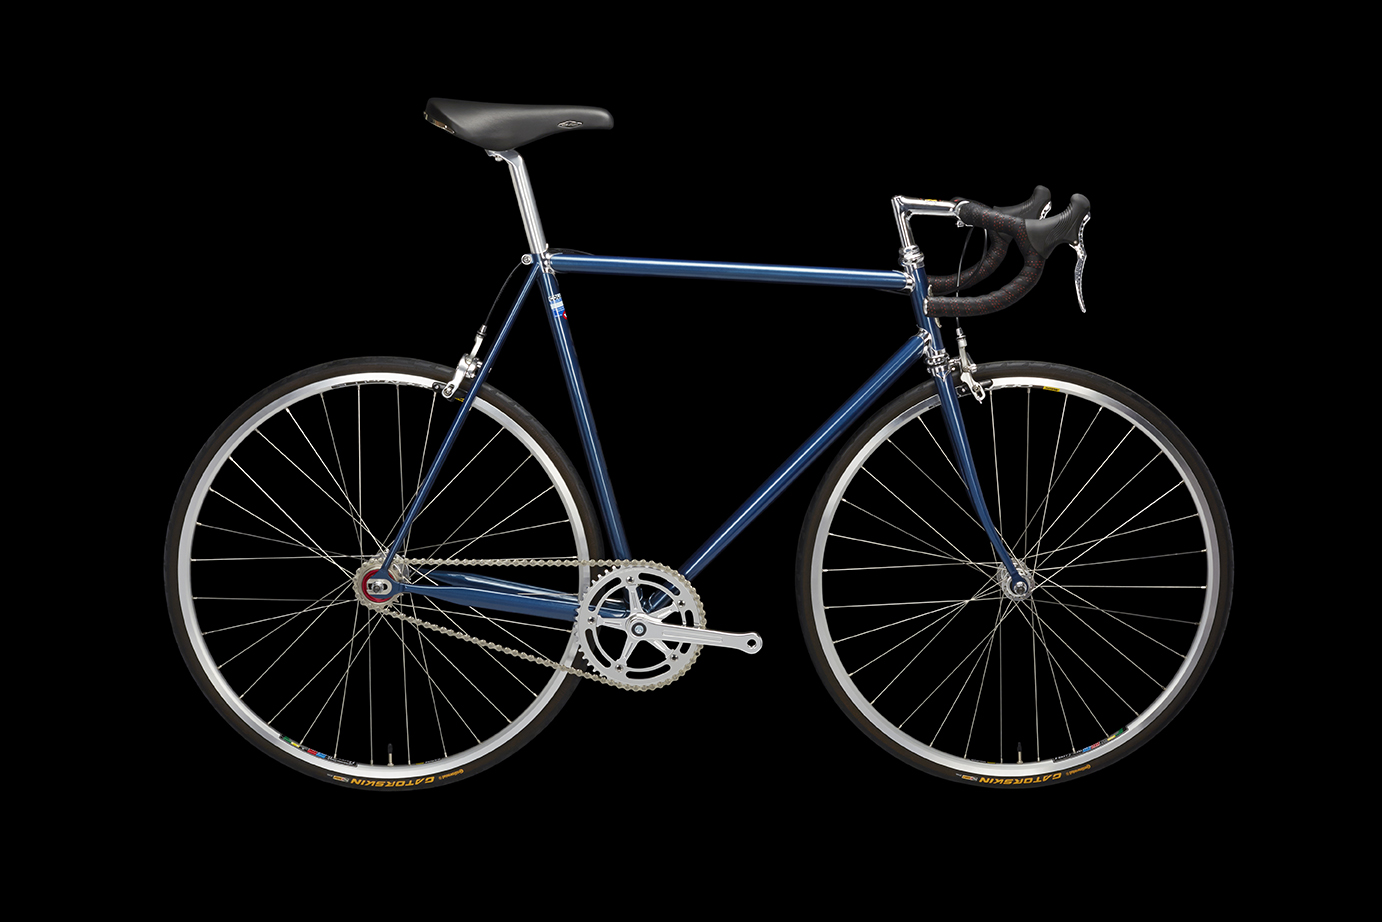 Sonnet artisan classic lugged steel track fixed gear bicycle